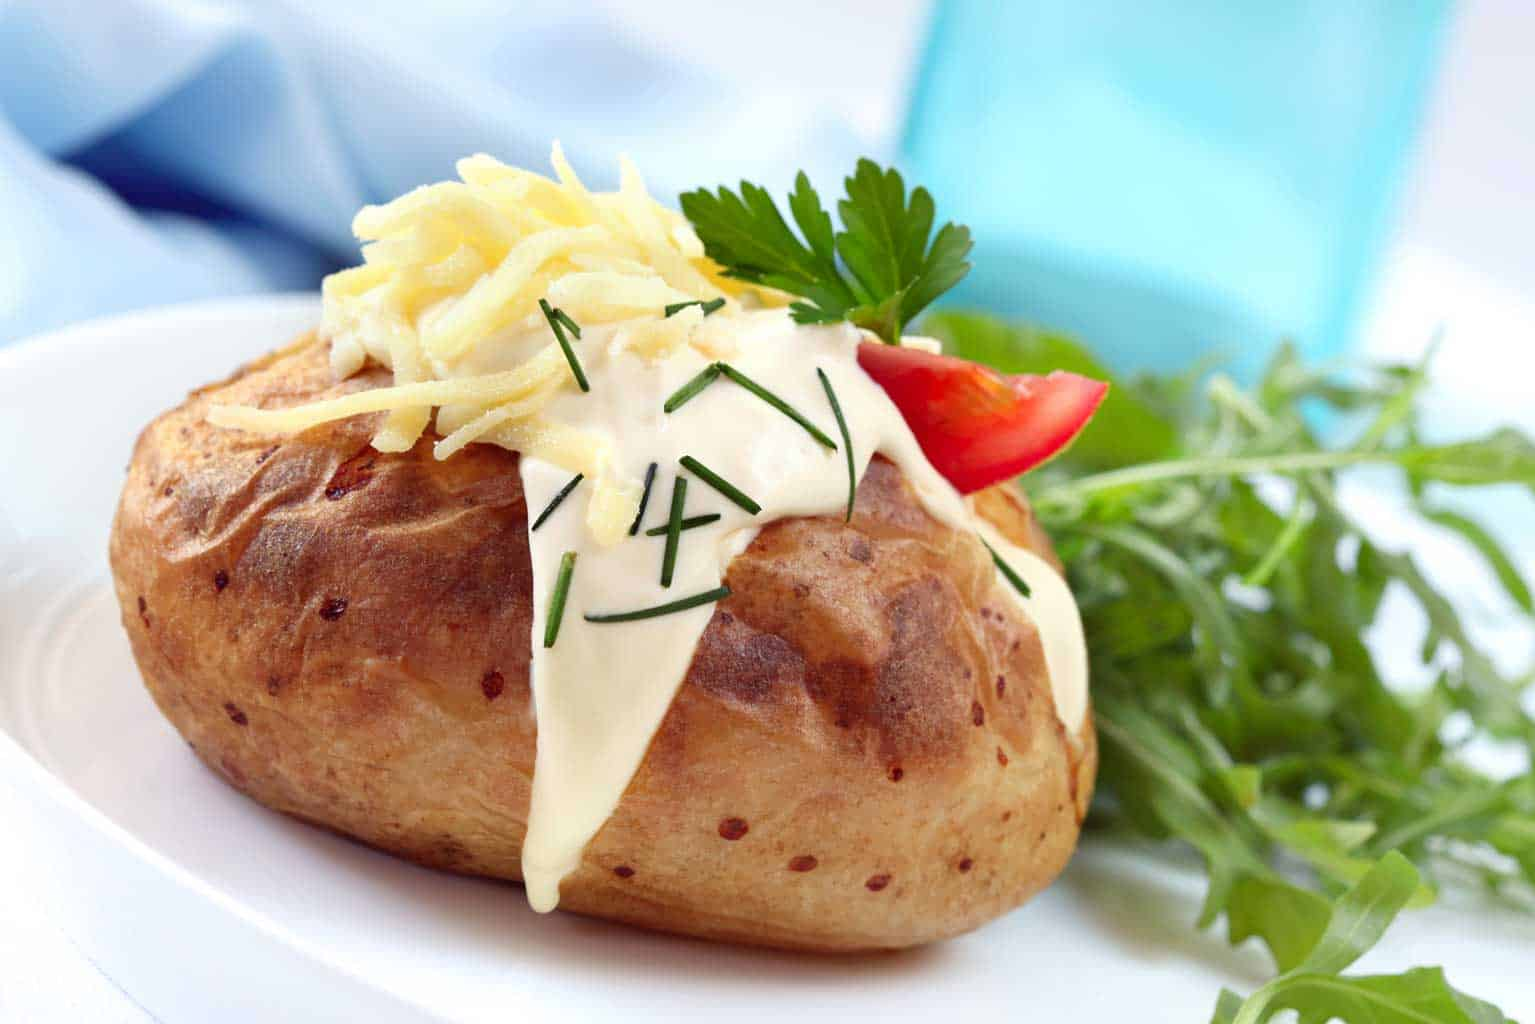 microwave jacket potato with cheese and cream